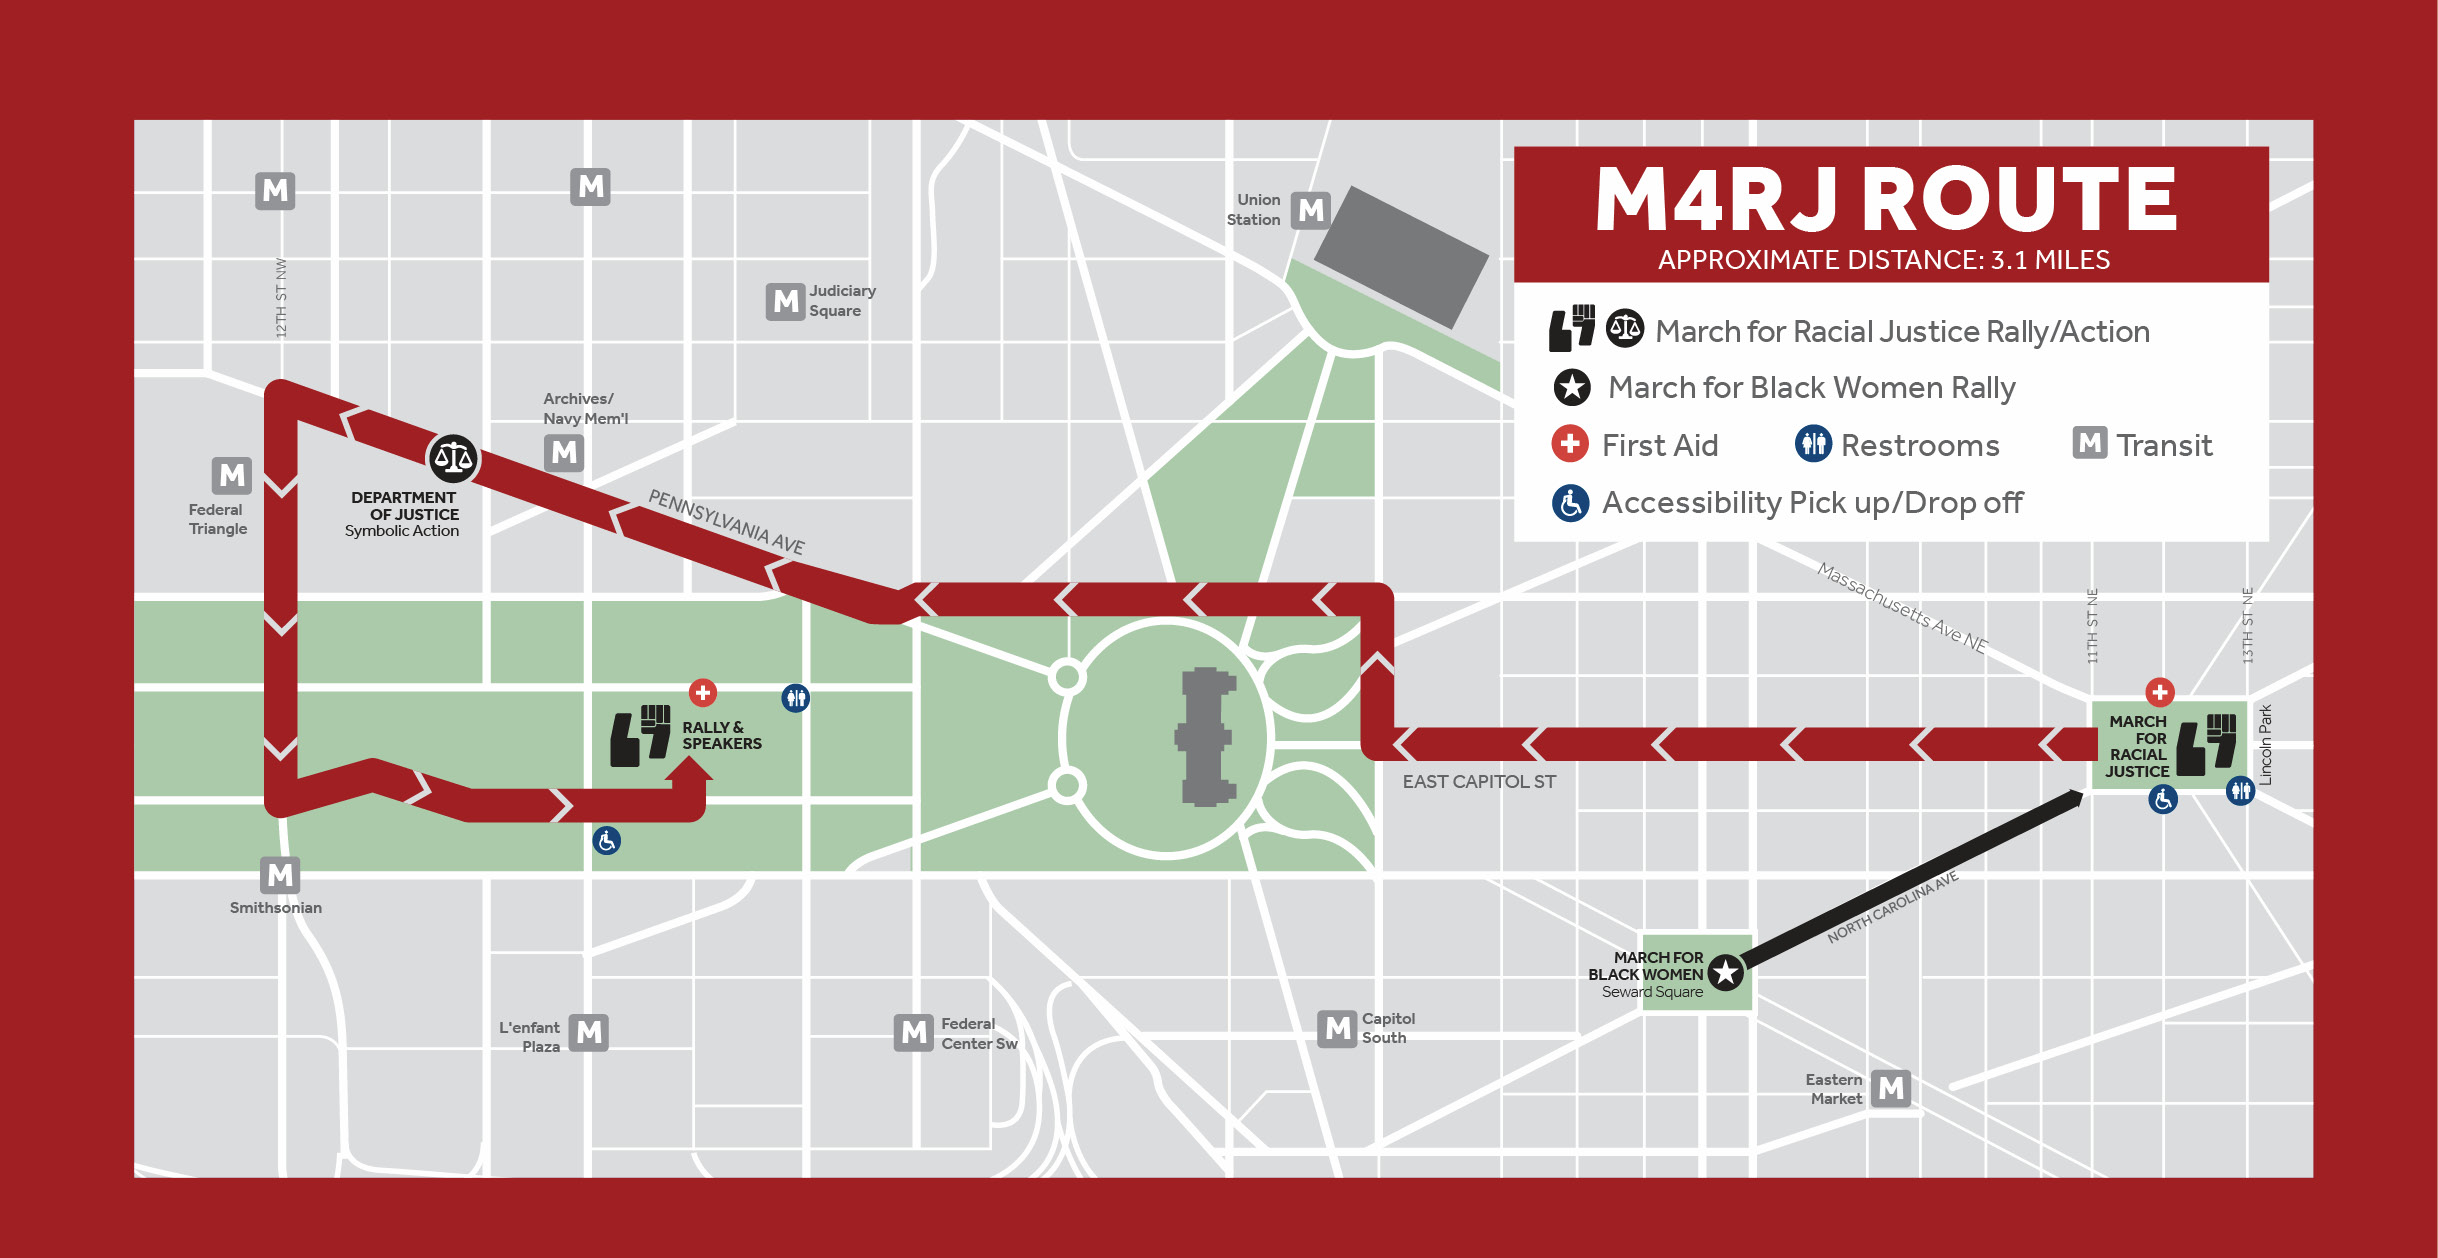 A graphic map of the march route from Lincoln Park to the Mall